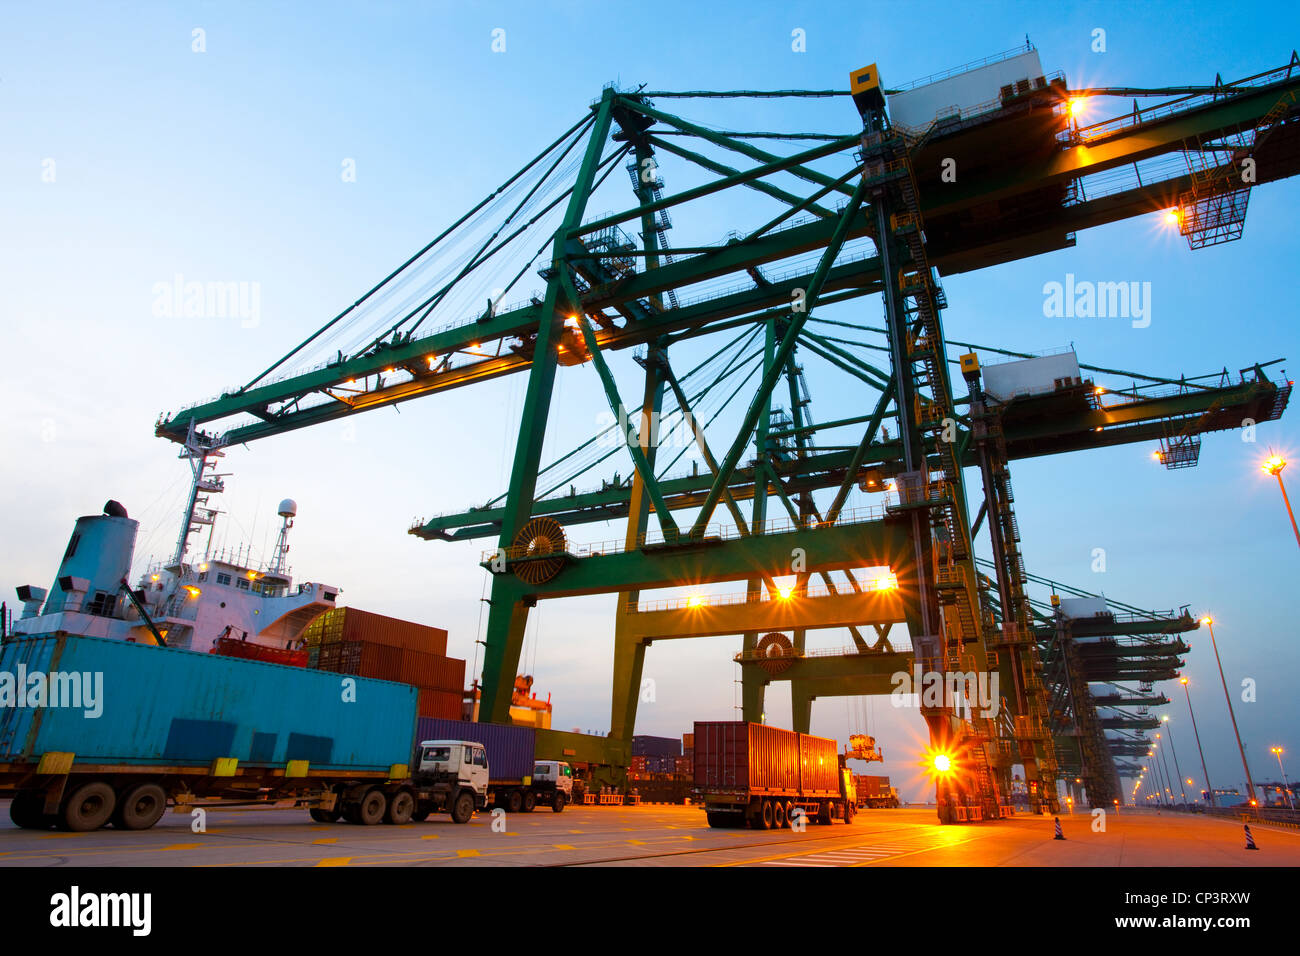 Cranes, cargo containers and trucks at a shipping port during dusk - Stock Image